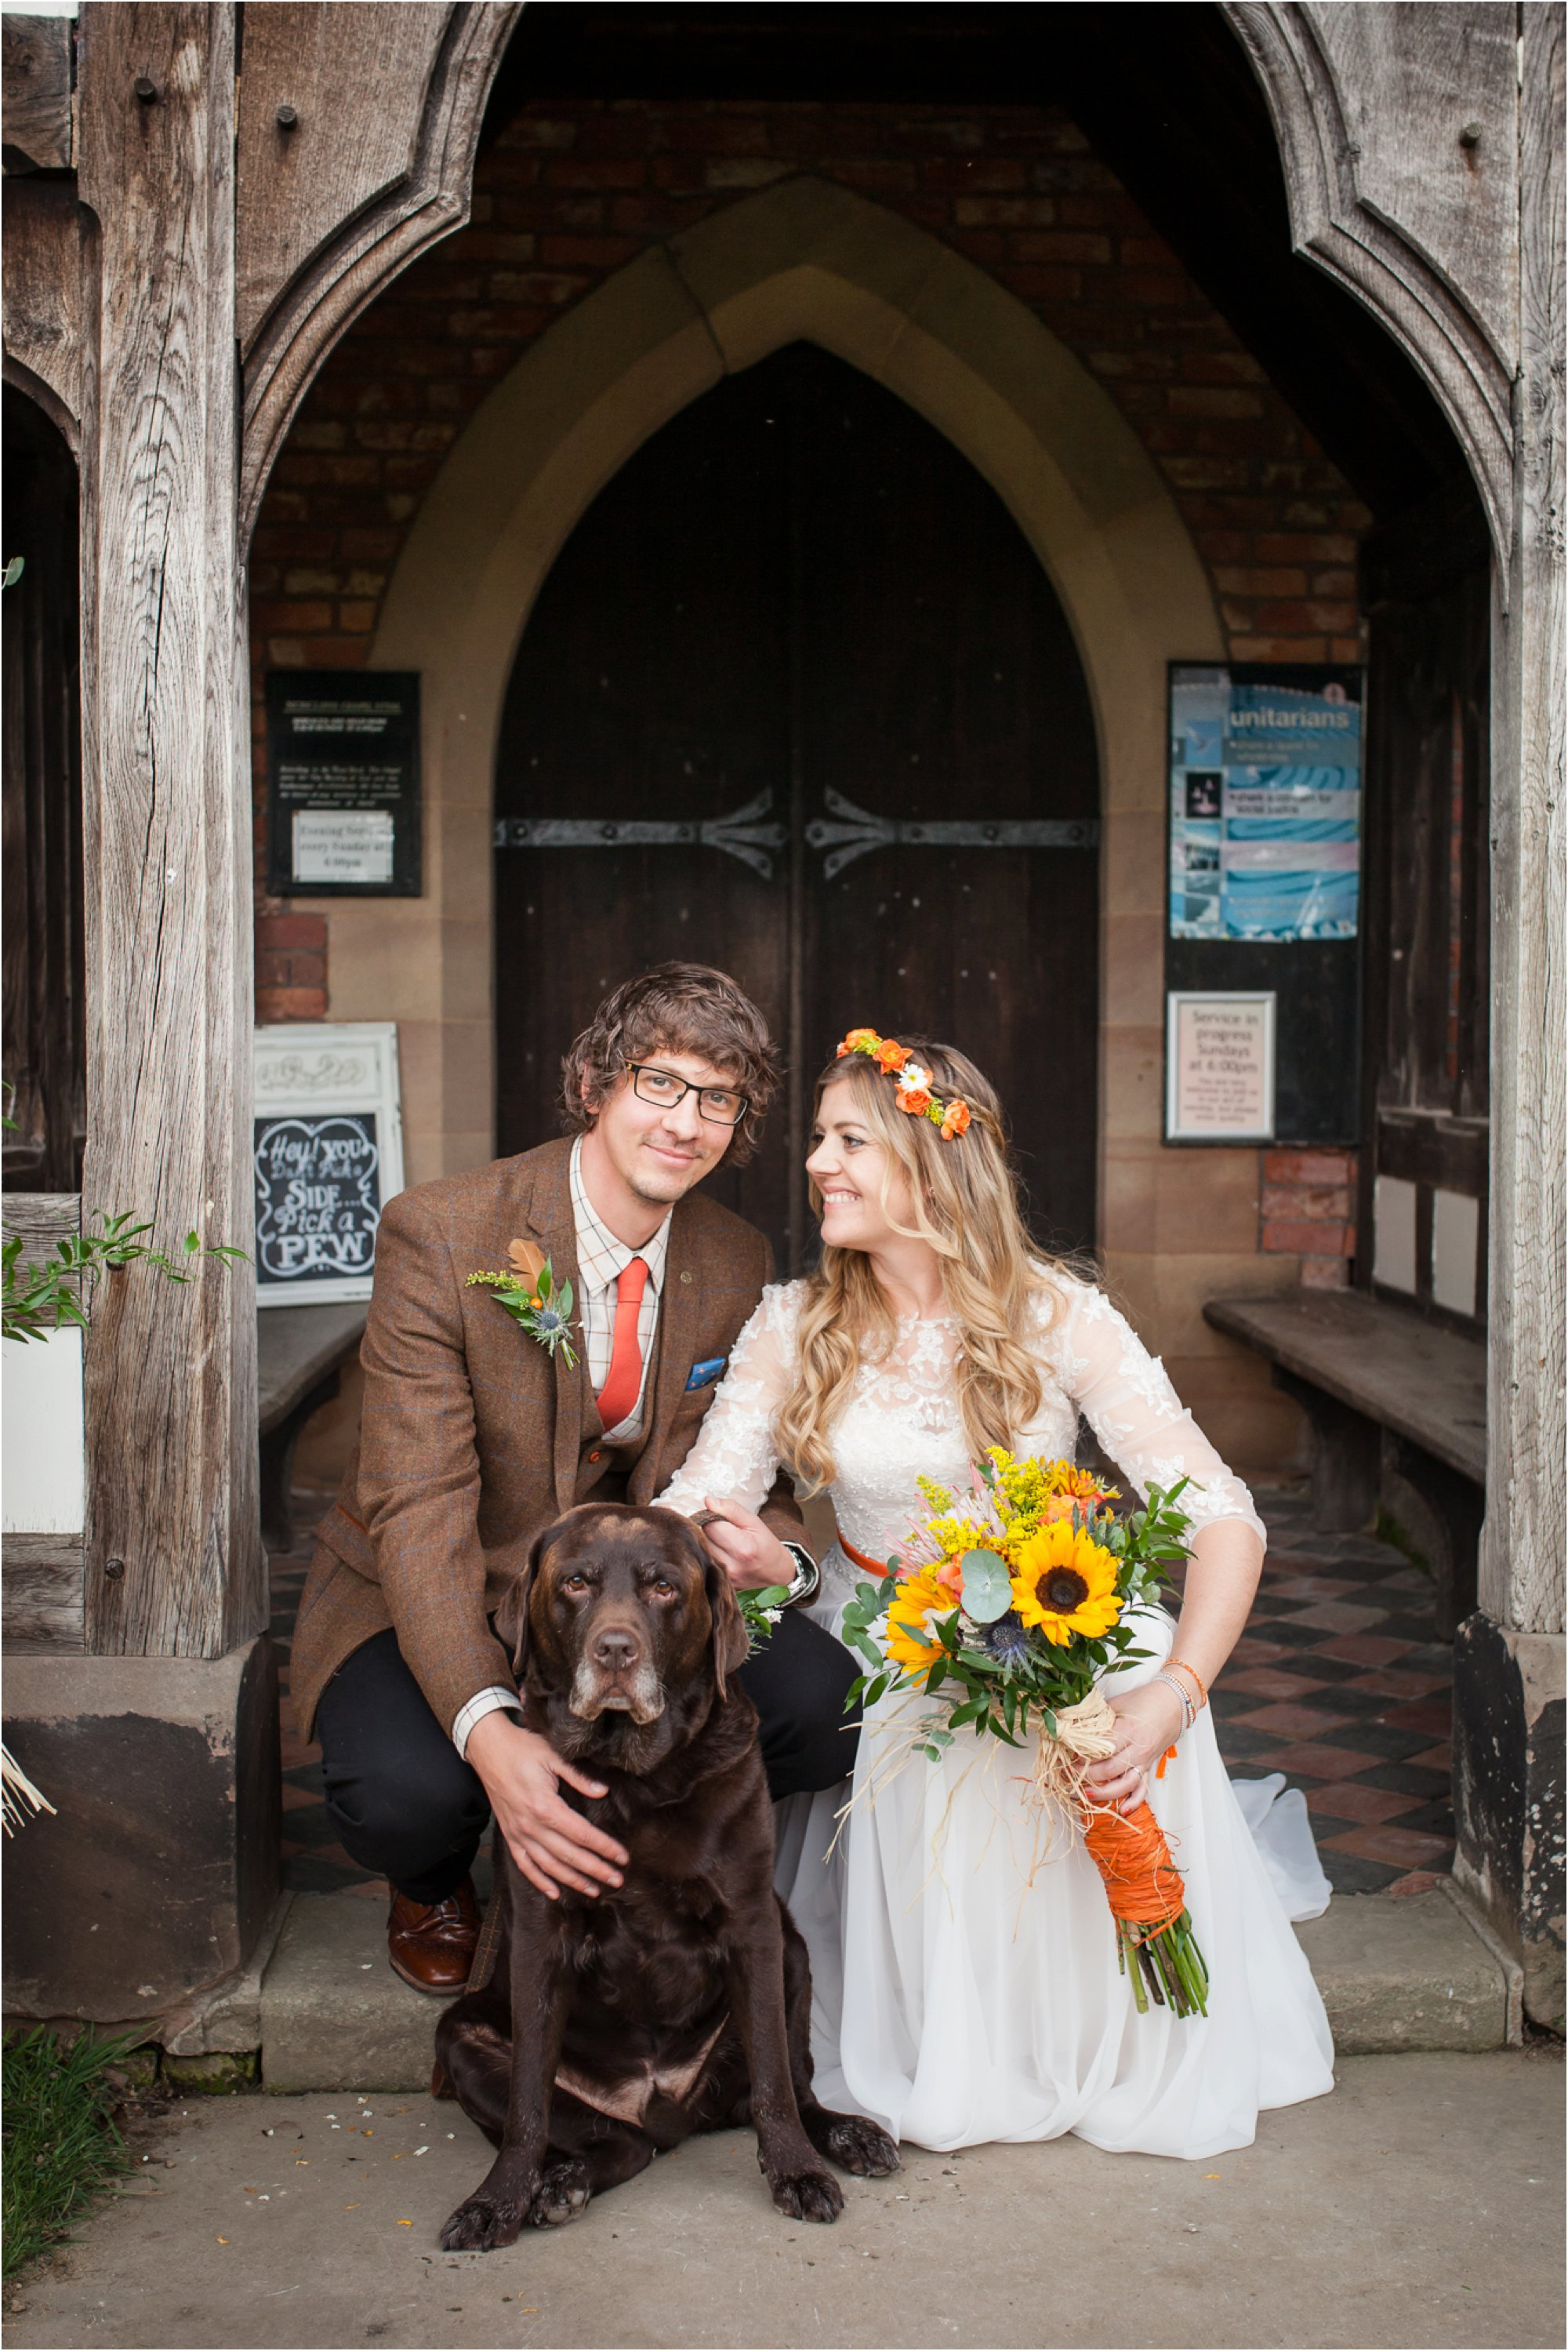 Styal_Wedding_Wilmslow_Cheshire_Autumn_Colourful_photography_0093.jpg